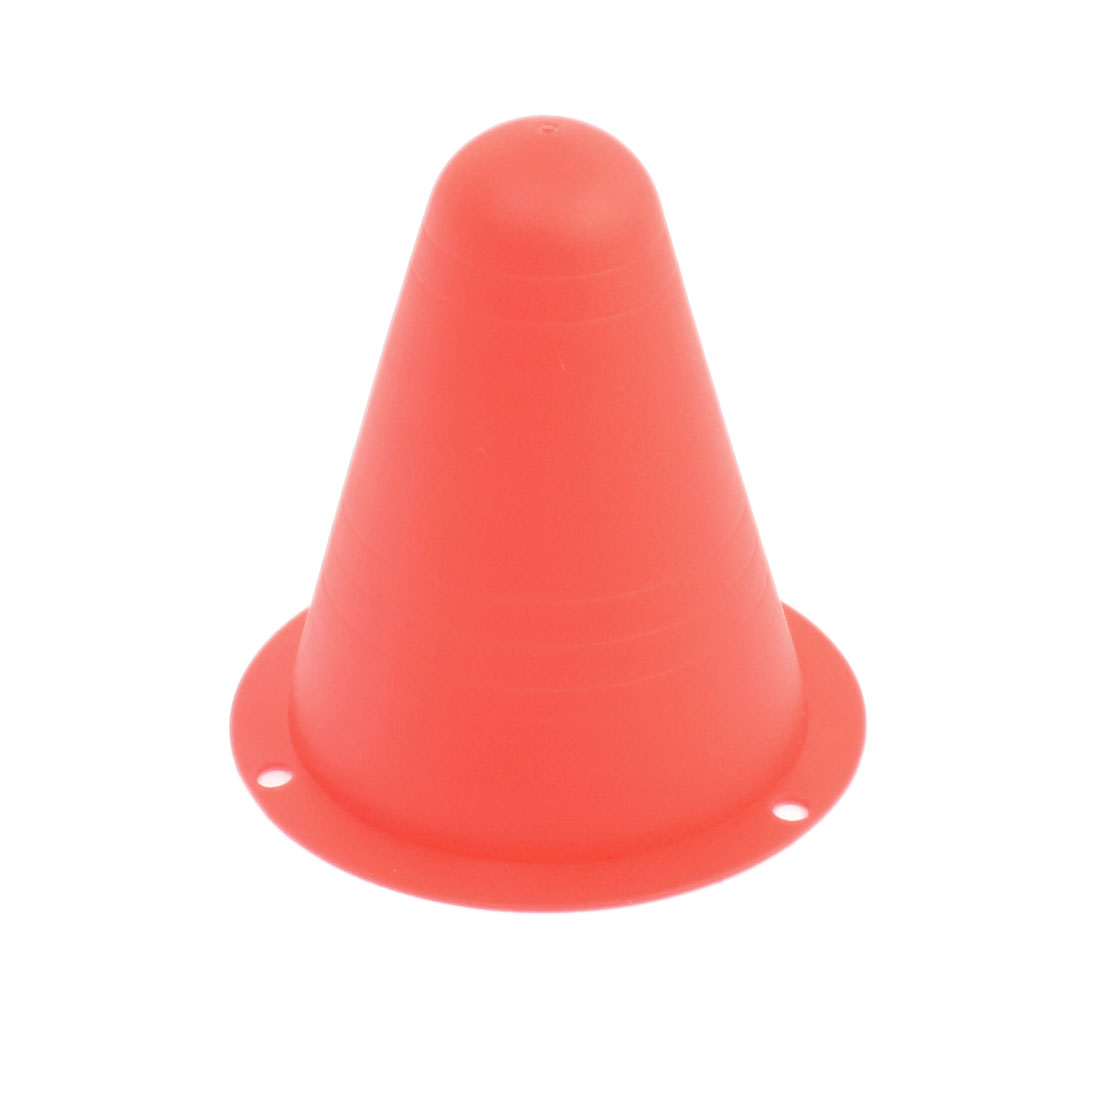 On Road Racing Competition Track Practice Conical Red Plastic Pile Roadblock 80mm x 80mm for RC Model Car Racer